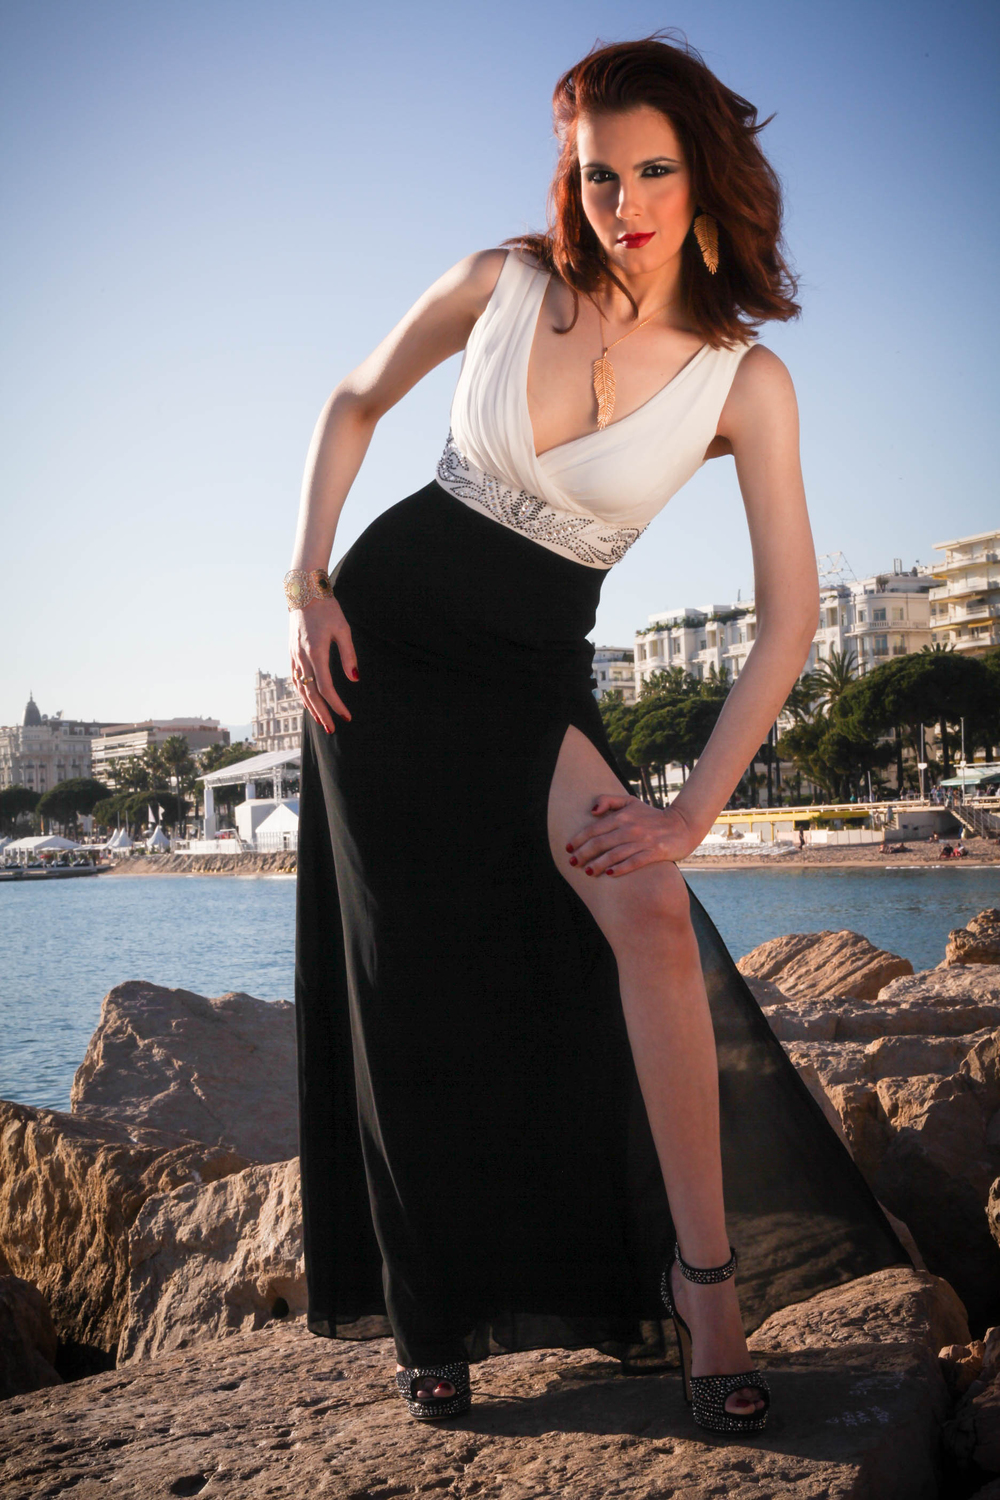 Cannes Promenade Photo Shoot May 2015 Professional Photo (84).jpg